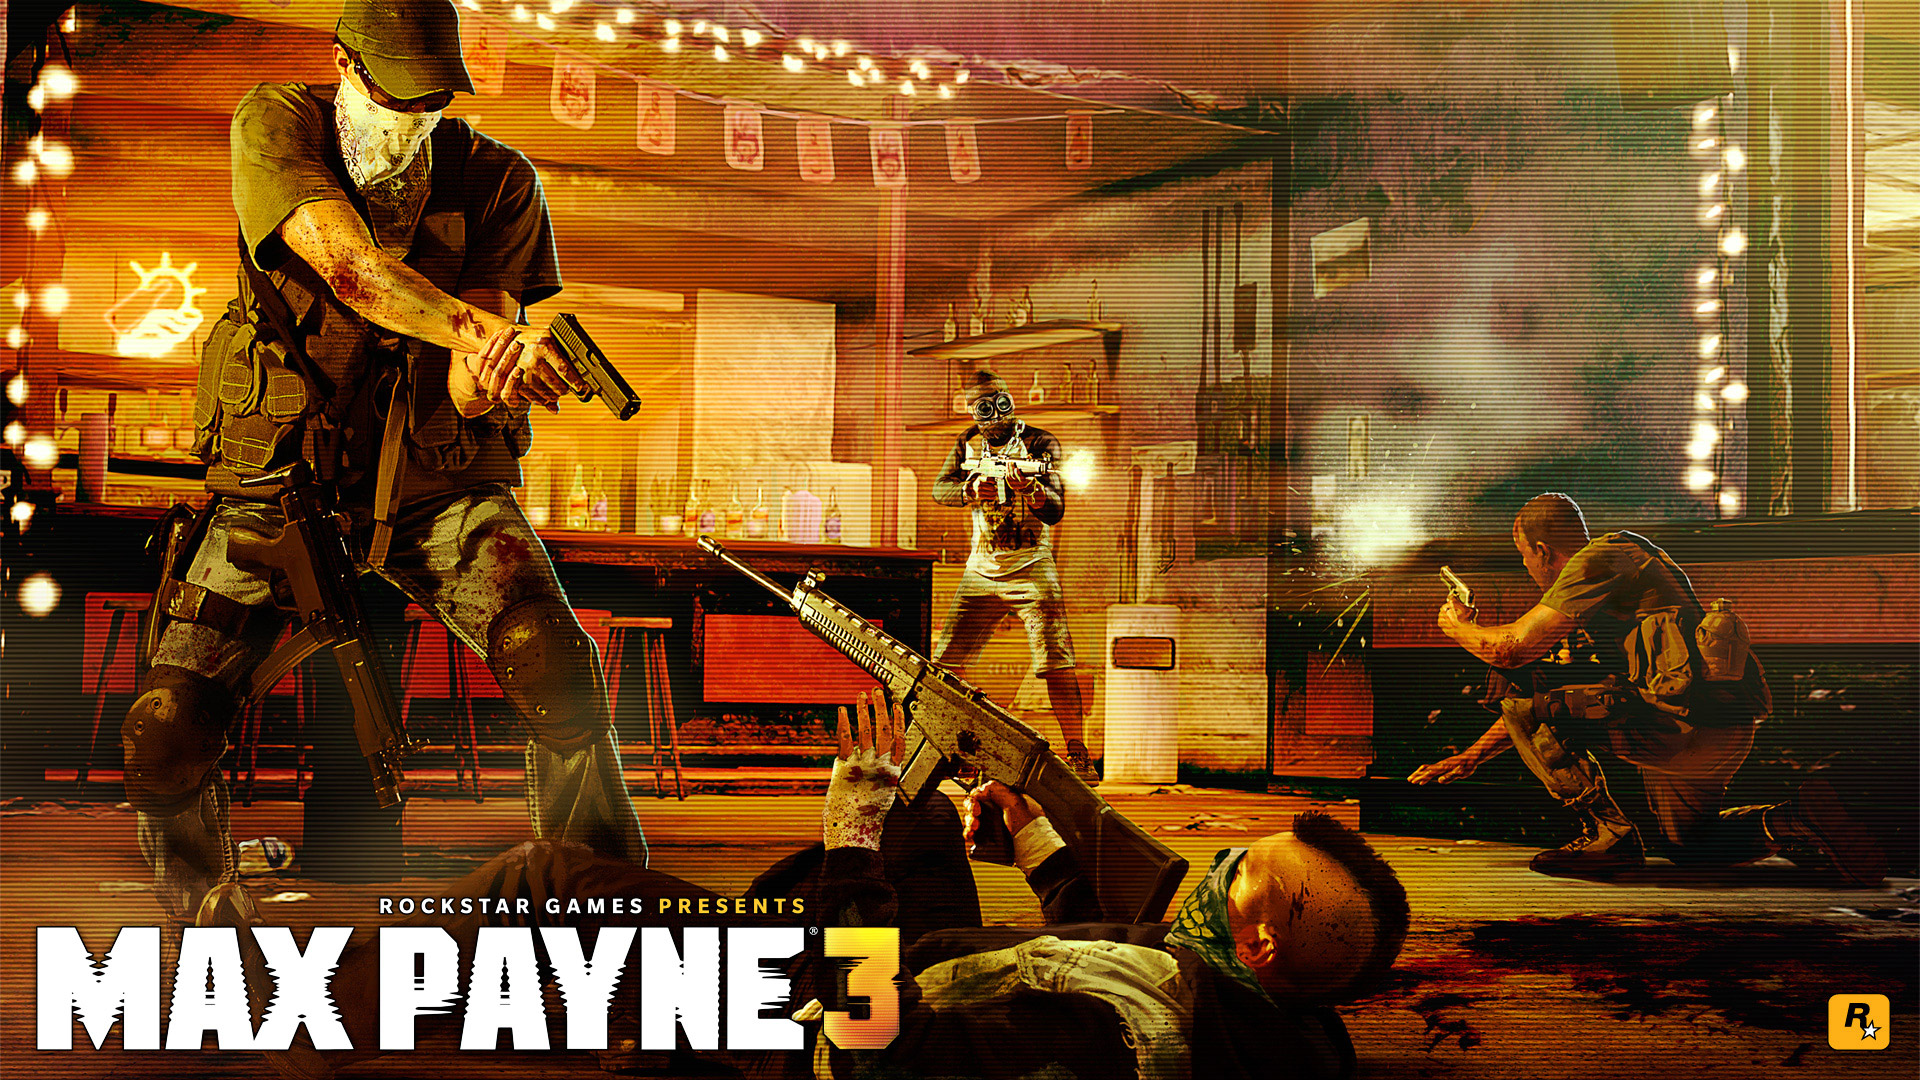 Max Payne 3 Wallpaper in 1920x1080